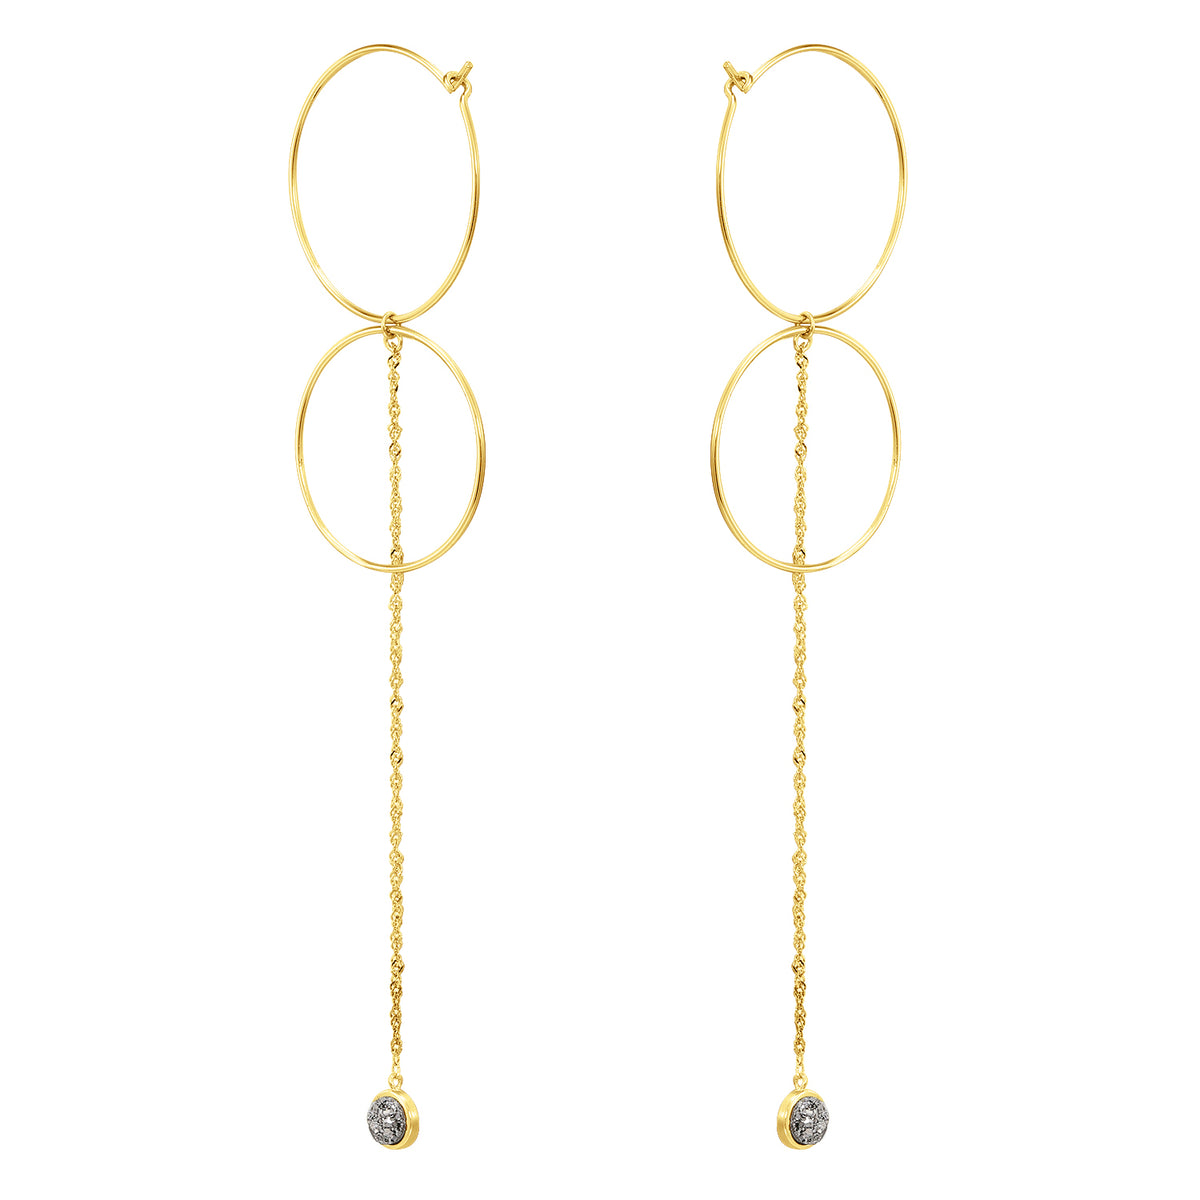 Fortuna| Moana Earrings | 925 Silver | Grey Agate | 14K Gold Plated